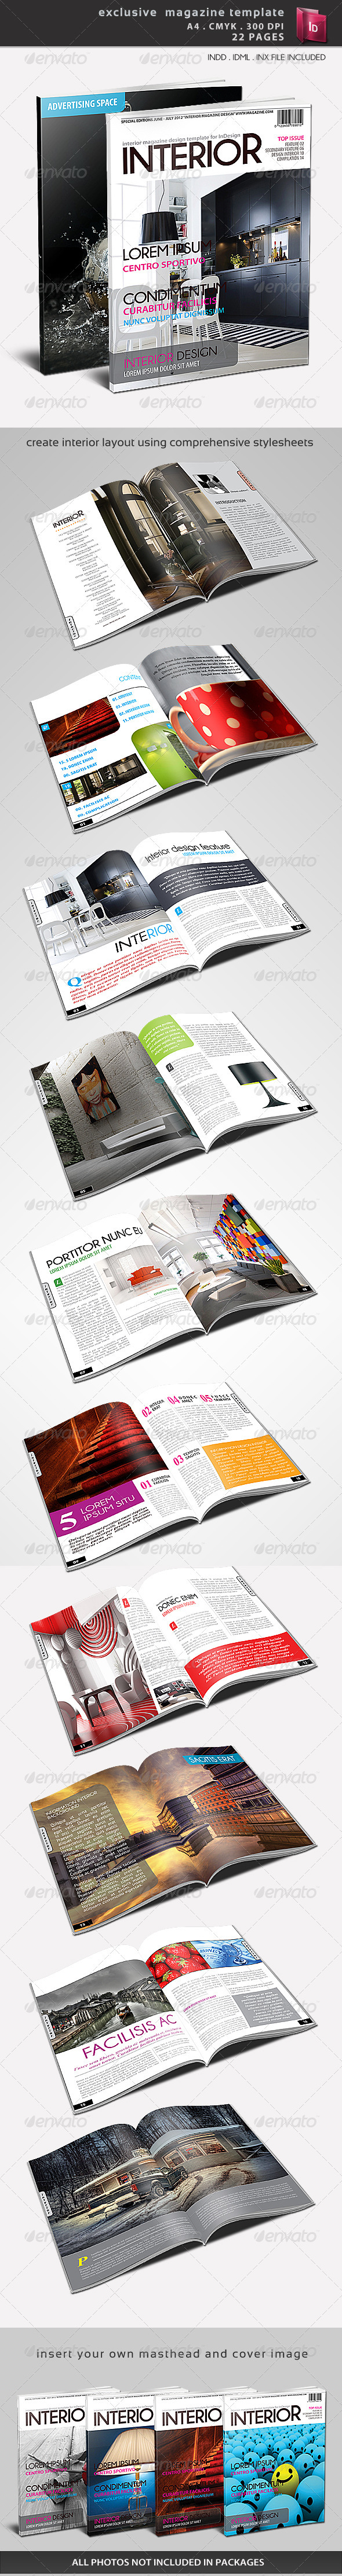 Exclusive Magazine Template - Magazines Print Templates